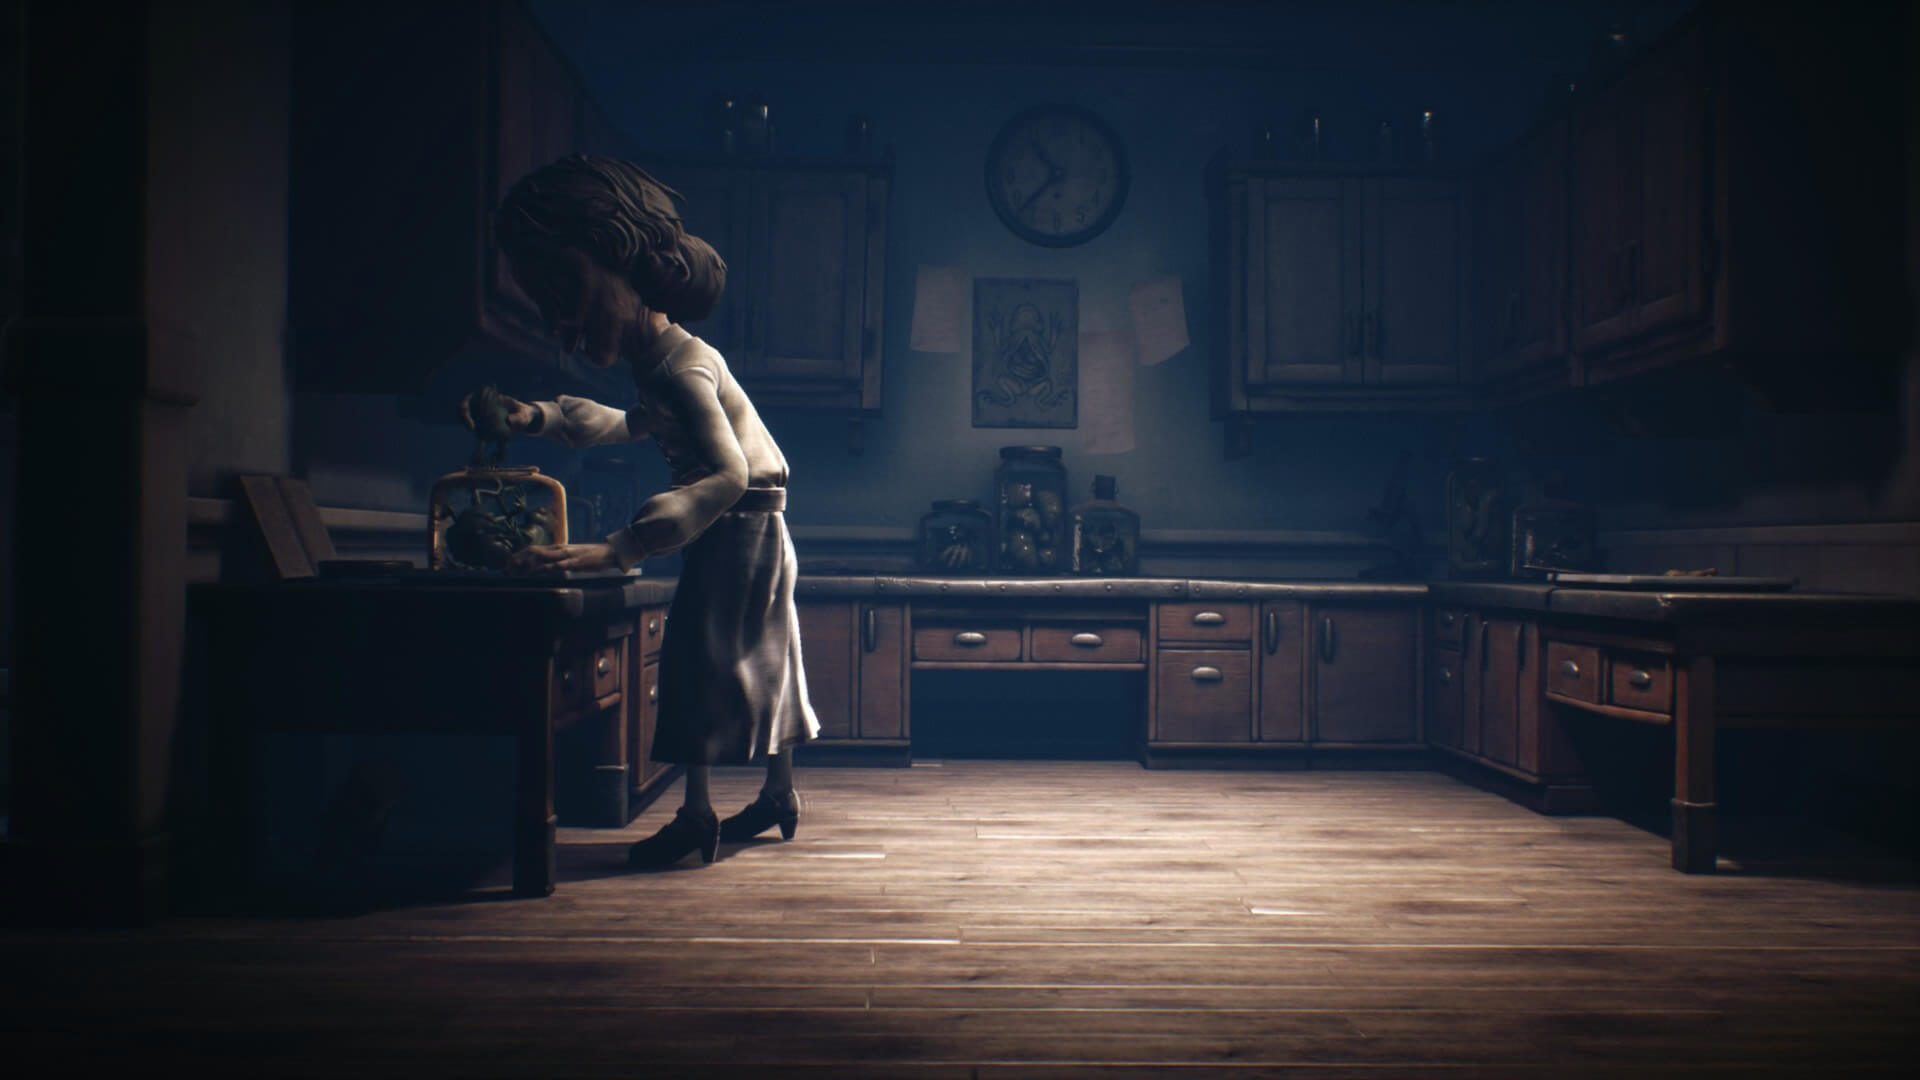 little nightmares ii 20210307105403